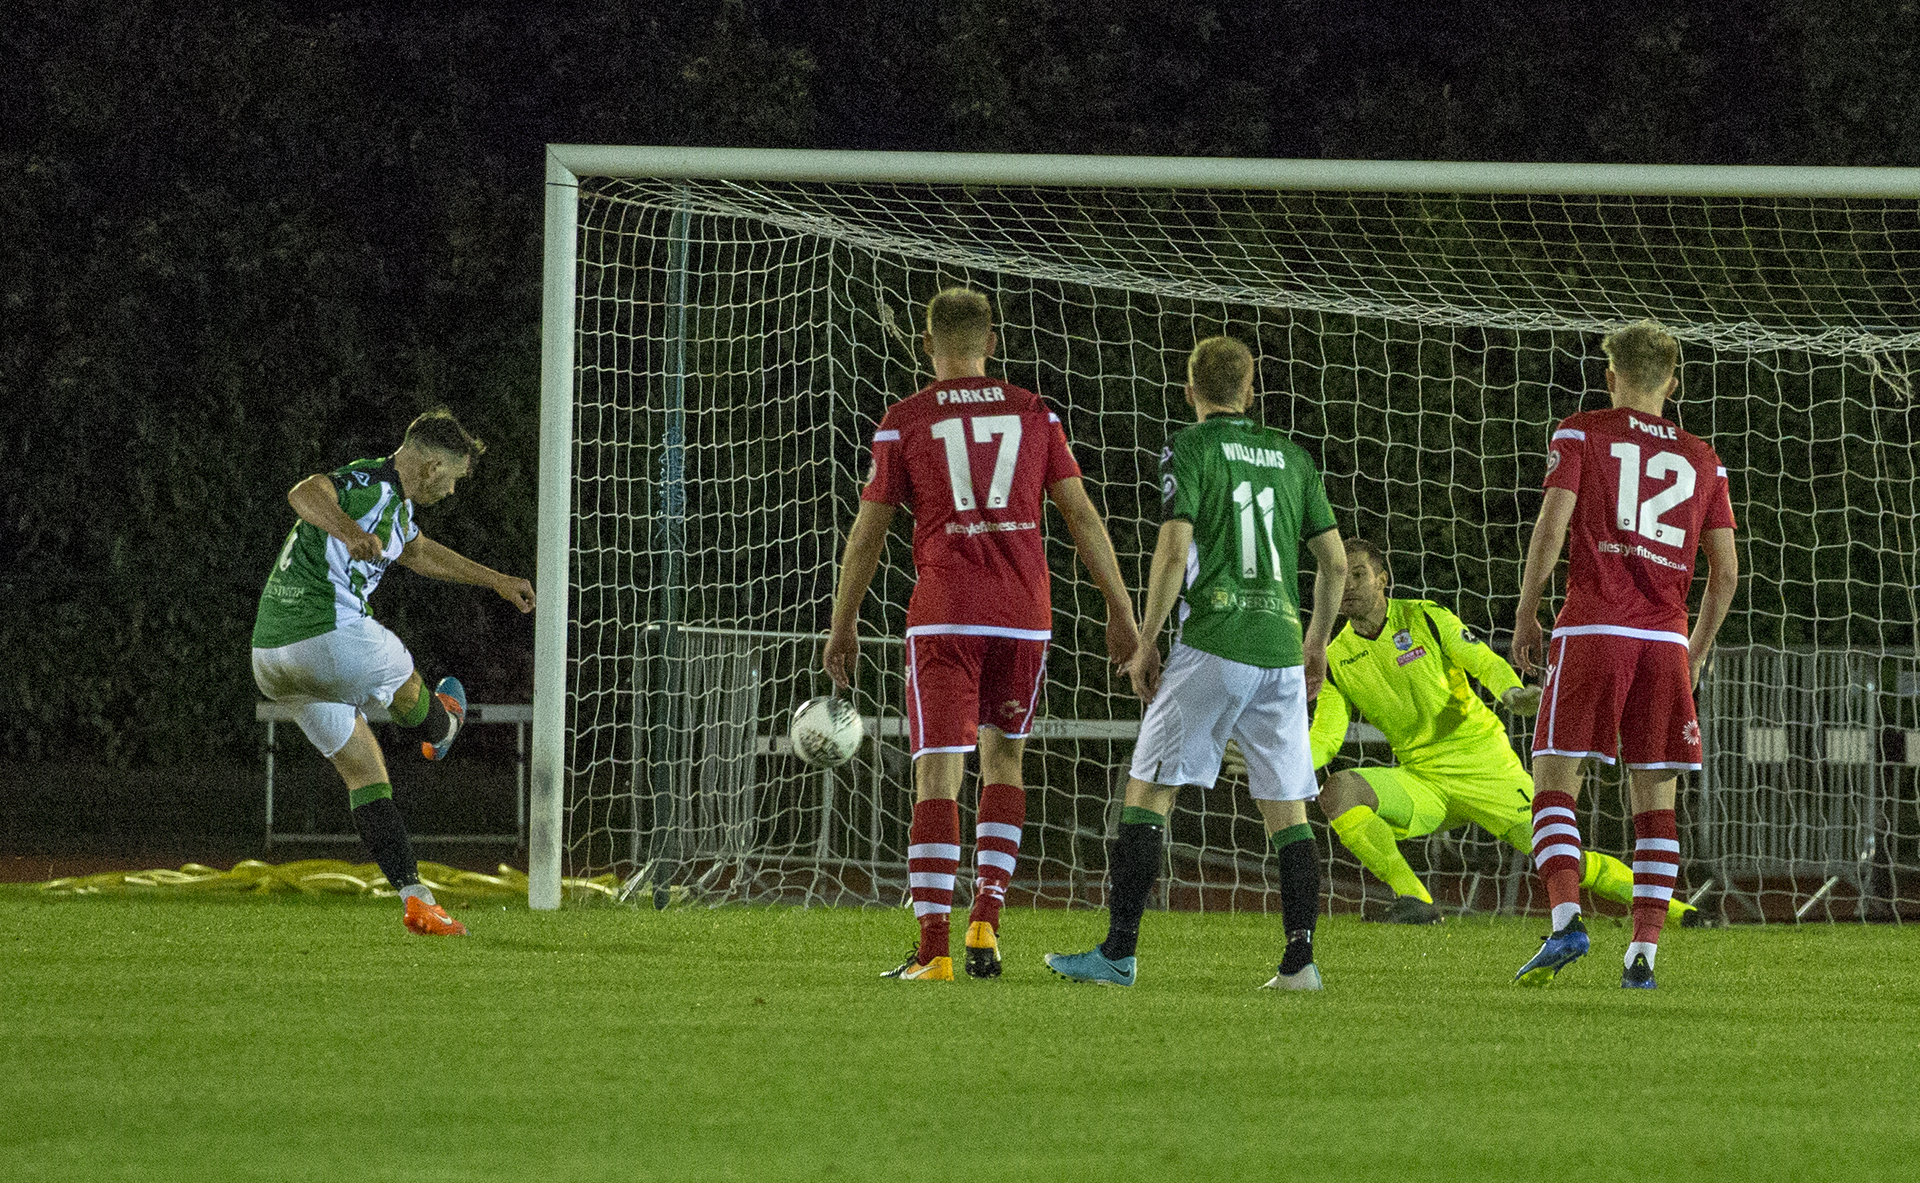 John Danby dives to save Declan Walker's penalty late in the second half © NCM Media